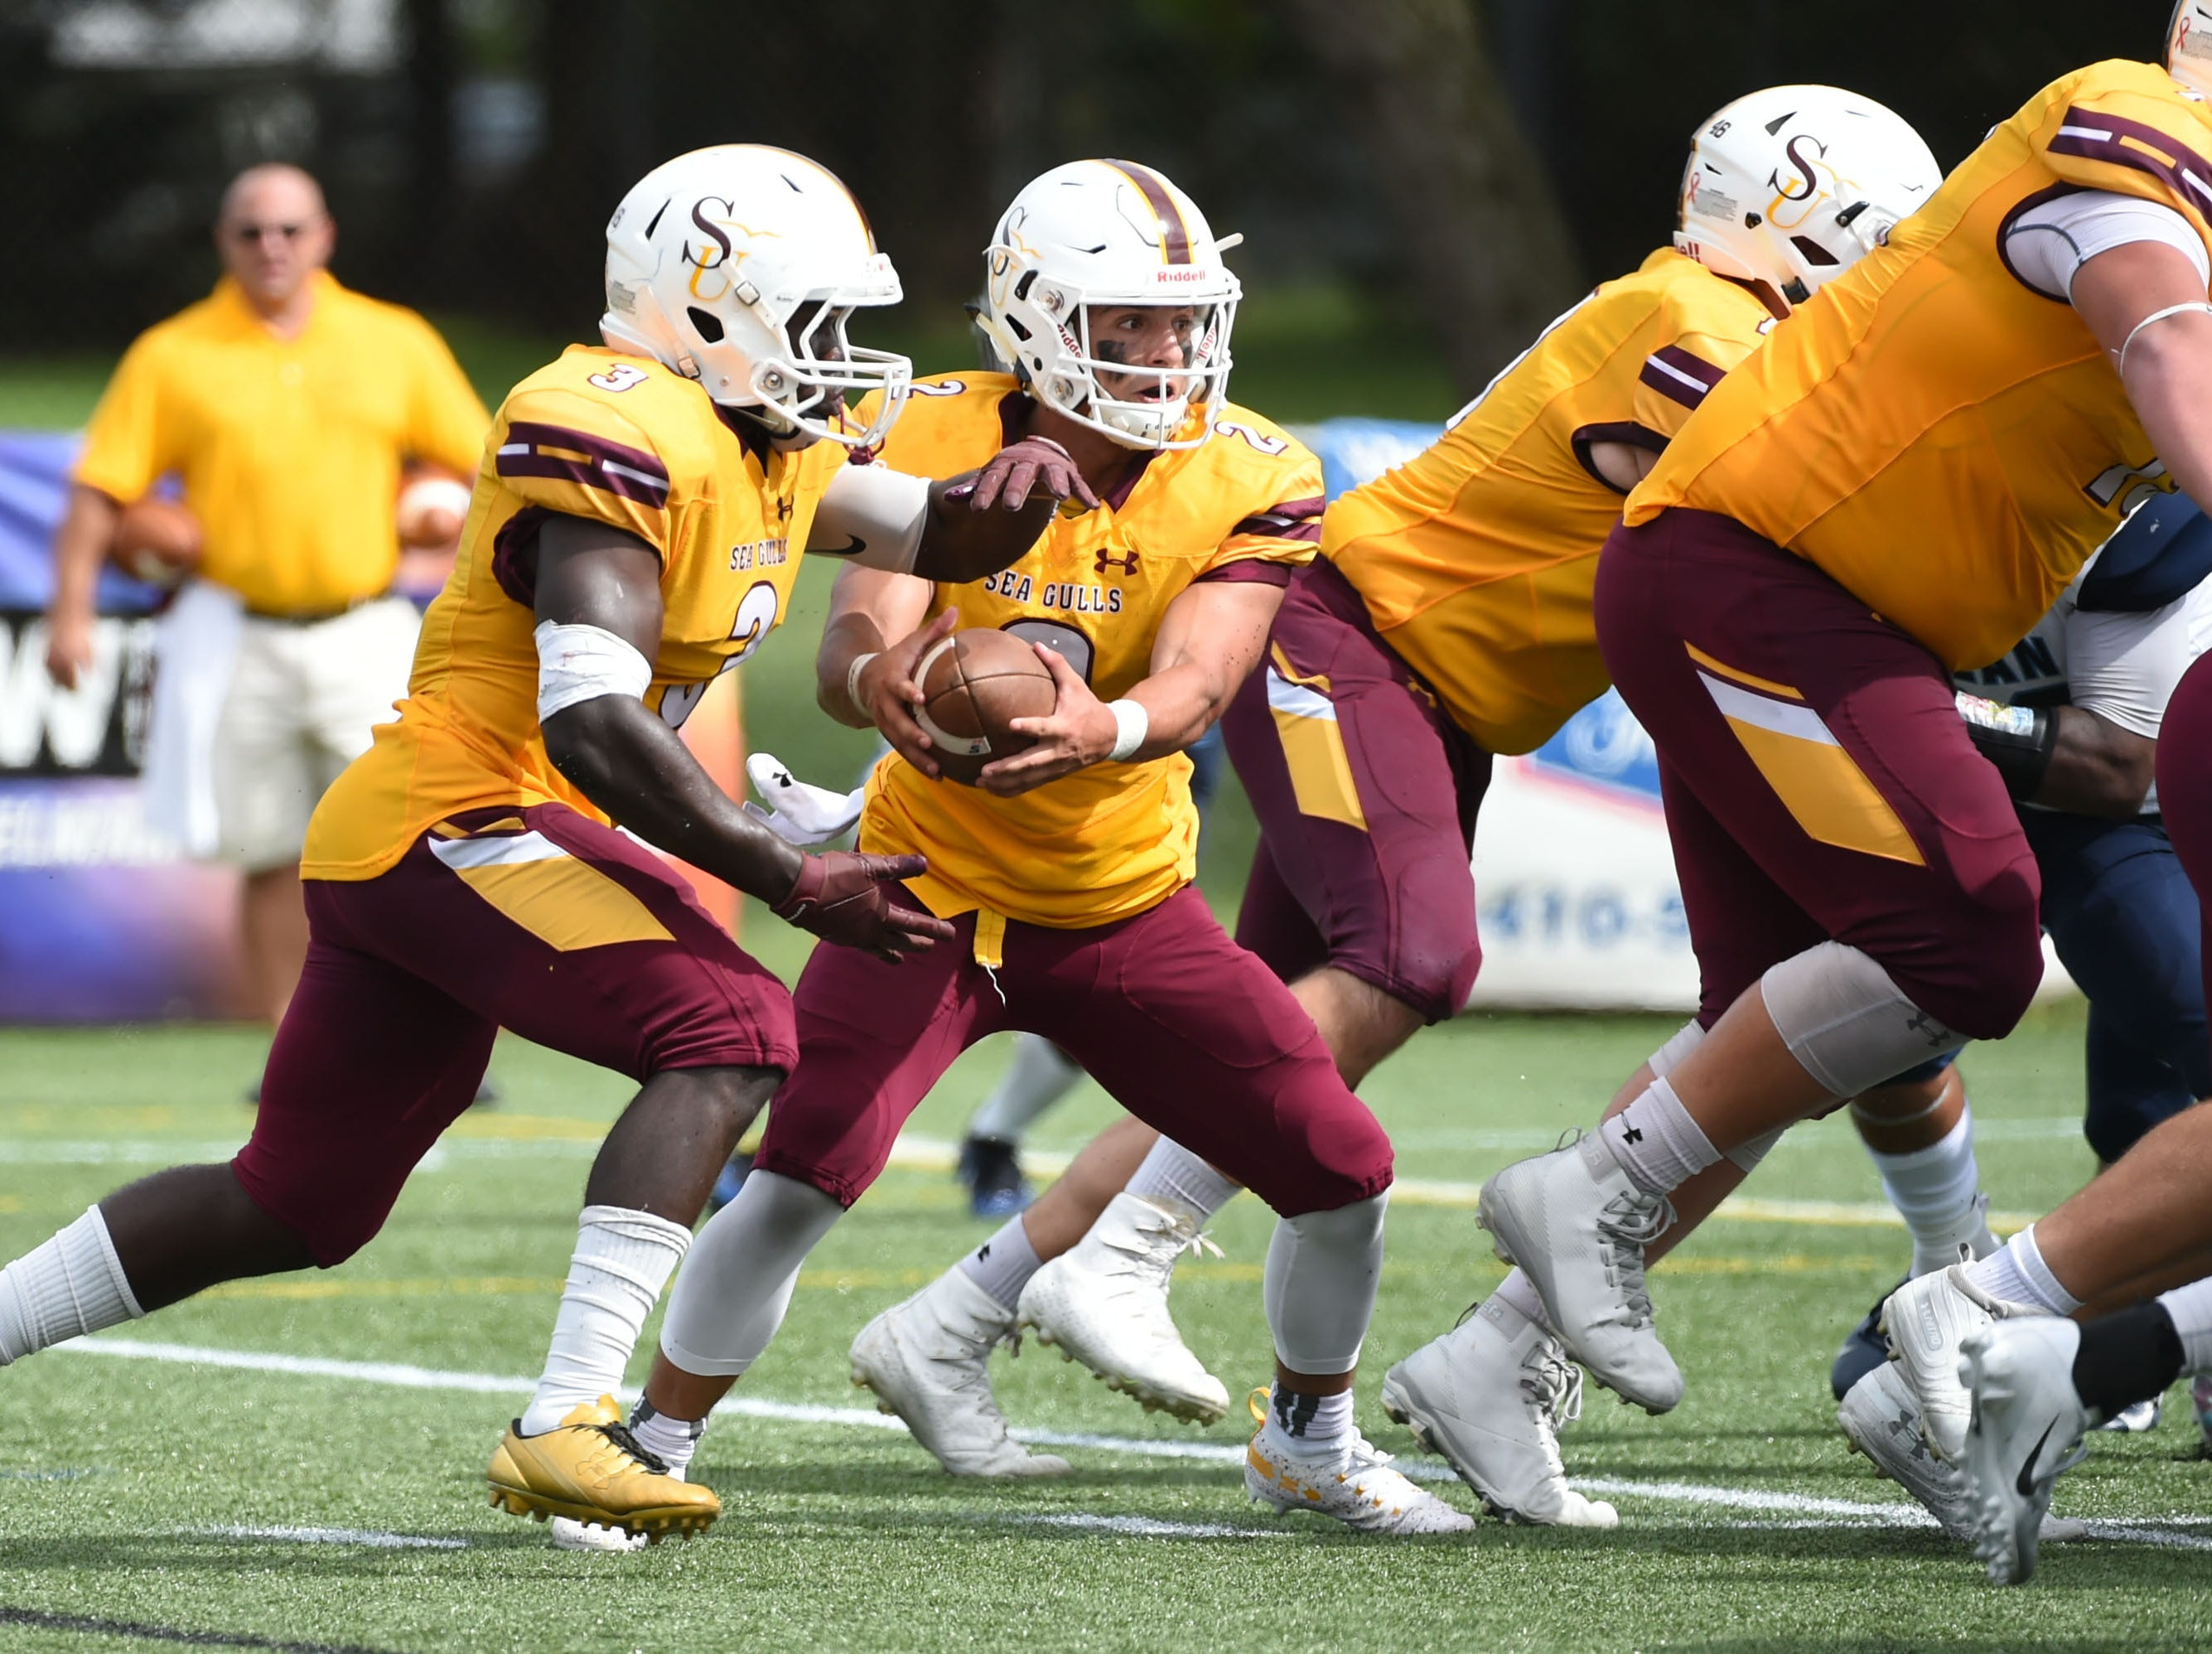 Salisbury's Mike-Ryan Mofor gets the carry against Kean on Saturday, Sept. 15, 2018 at Seagull Stadium.